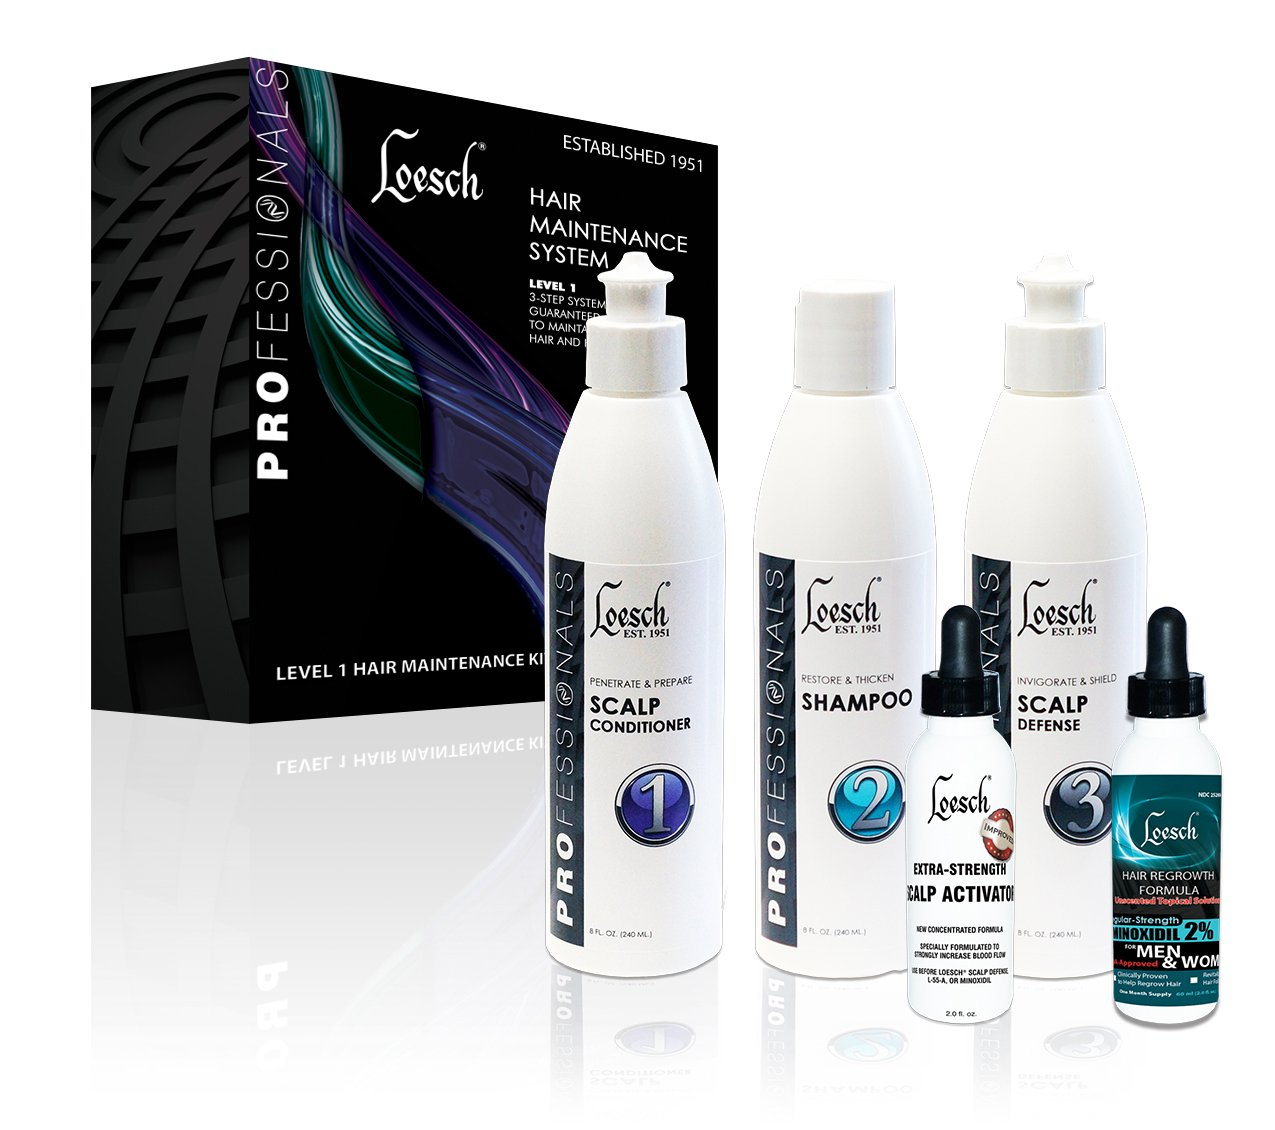 Loesch Professional Maximum Treatment Kit FOR MEN & WOMEN (Level 3), to stimulate hair growth or prevent hair loss.